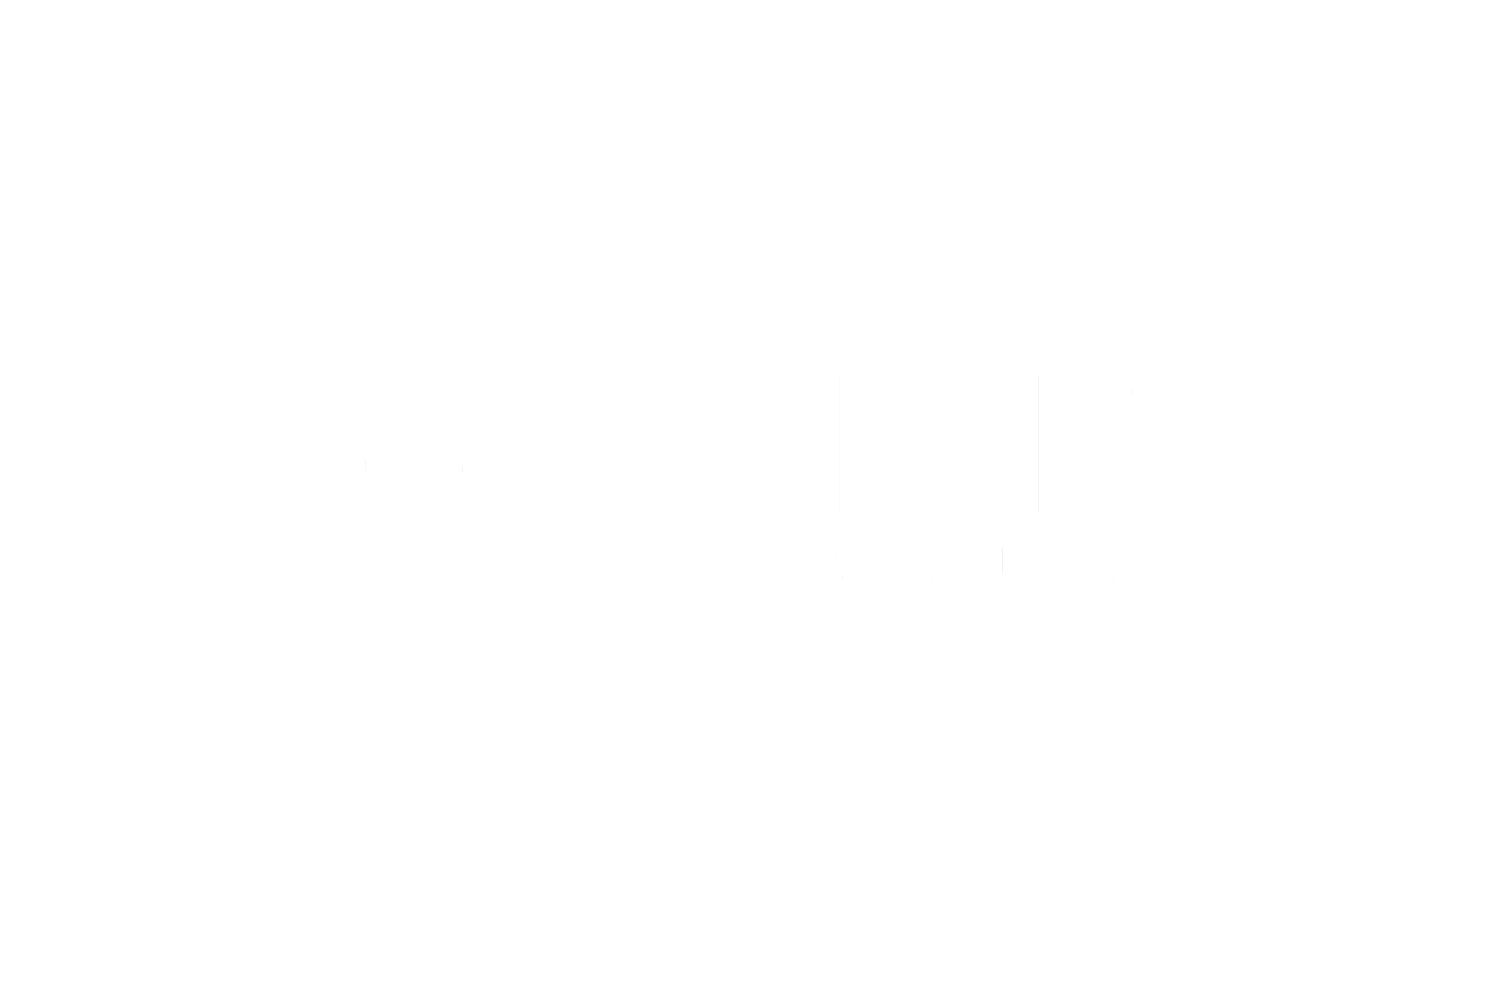 Mt Zion Free Methodist Church